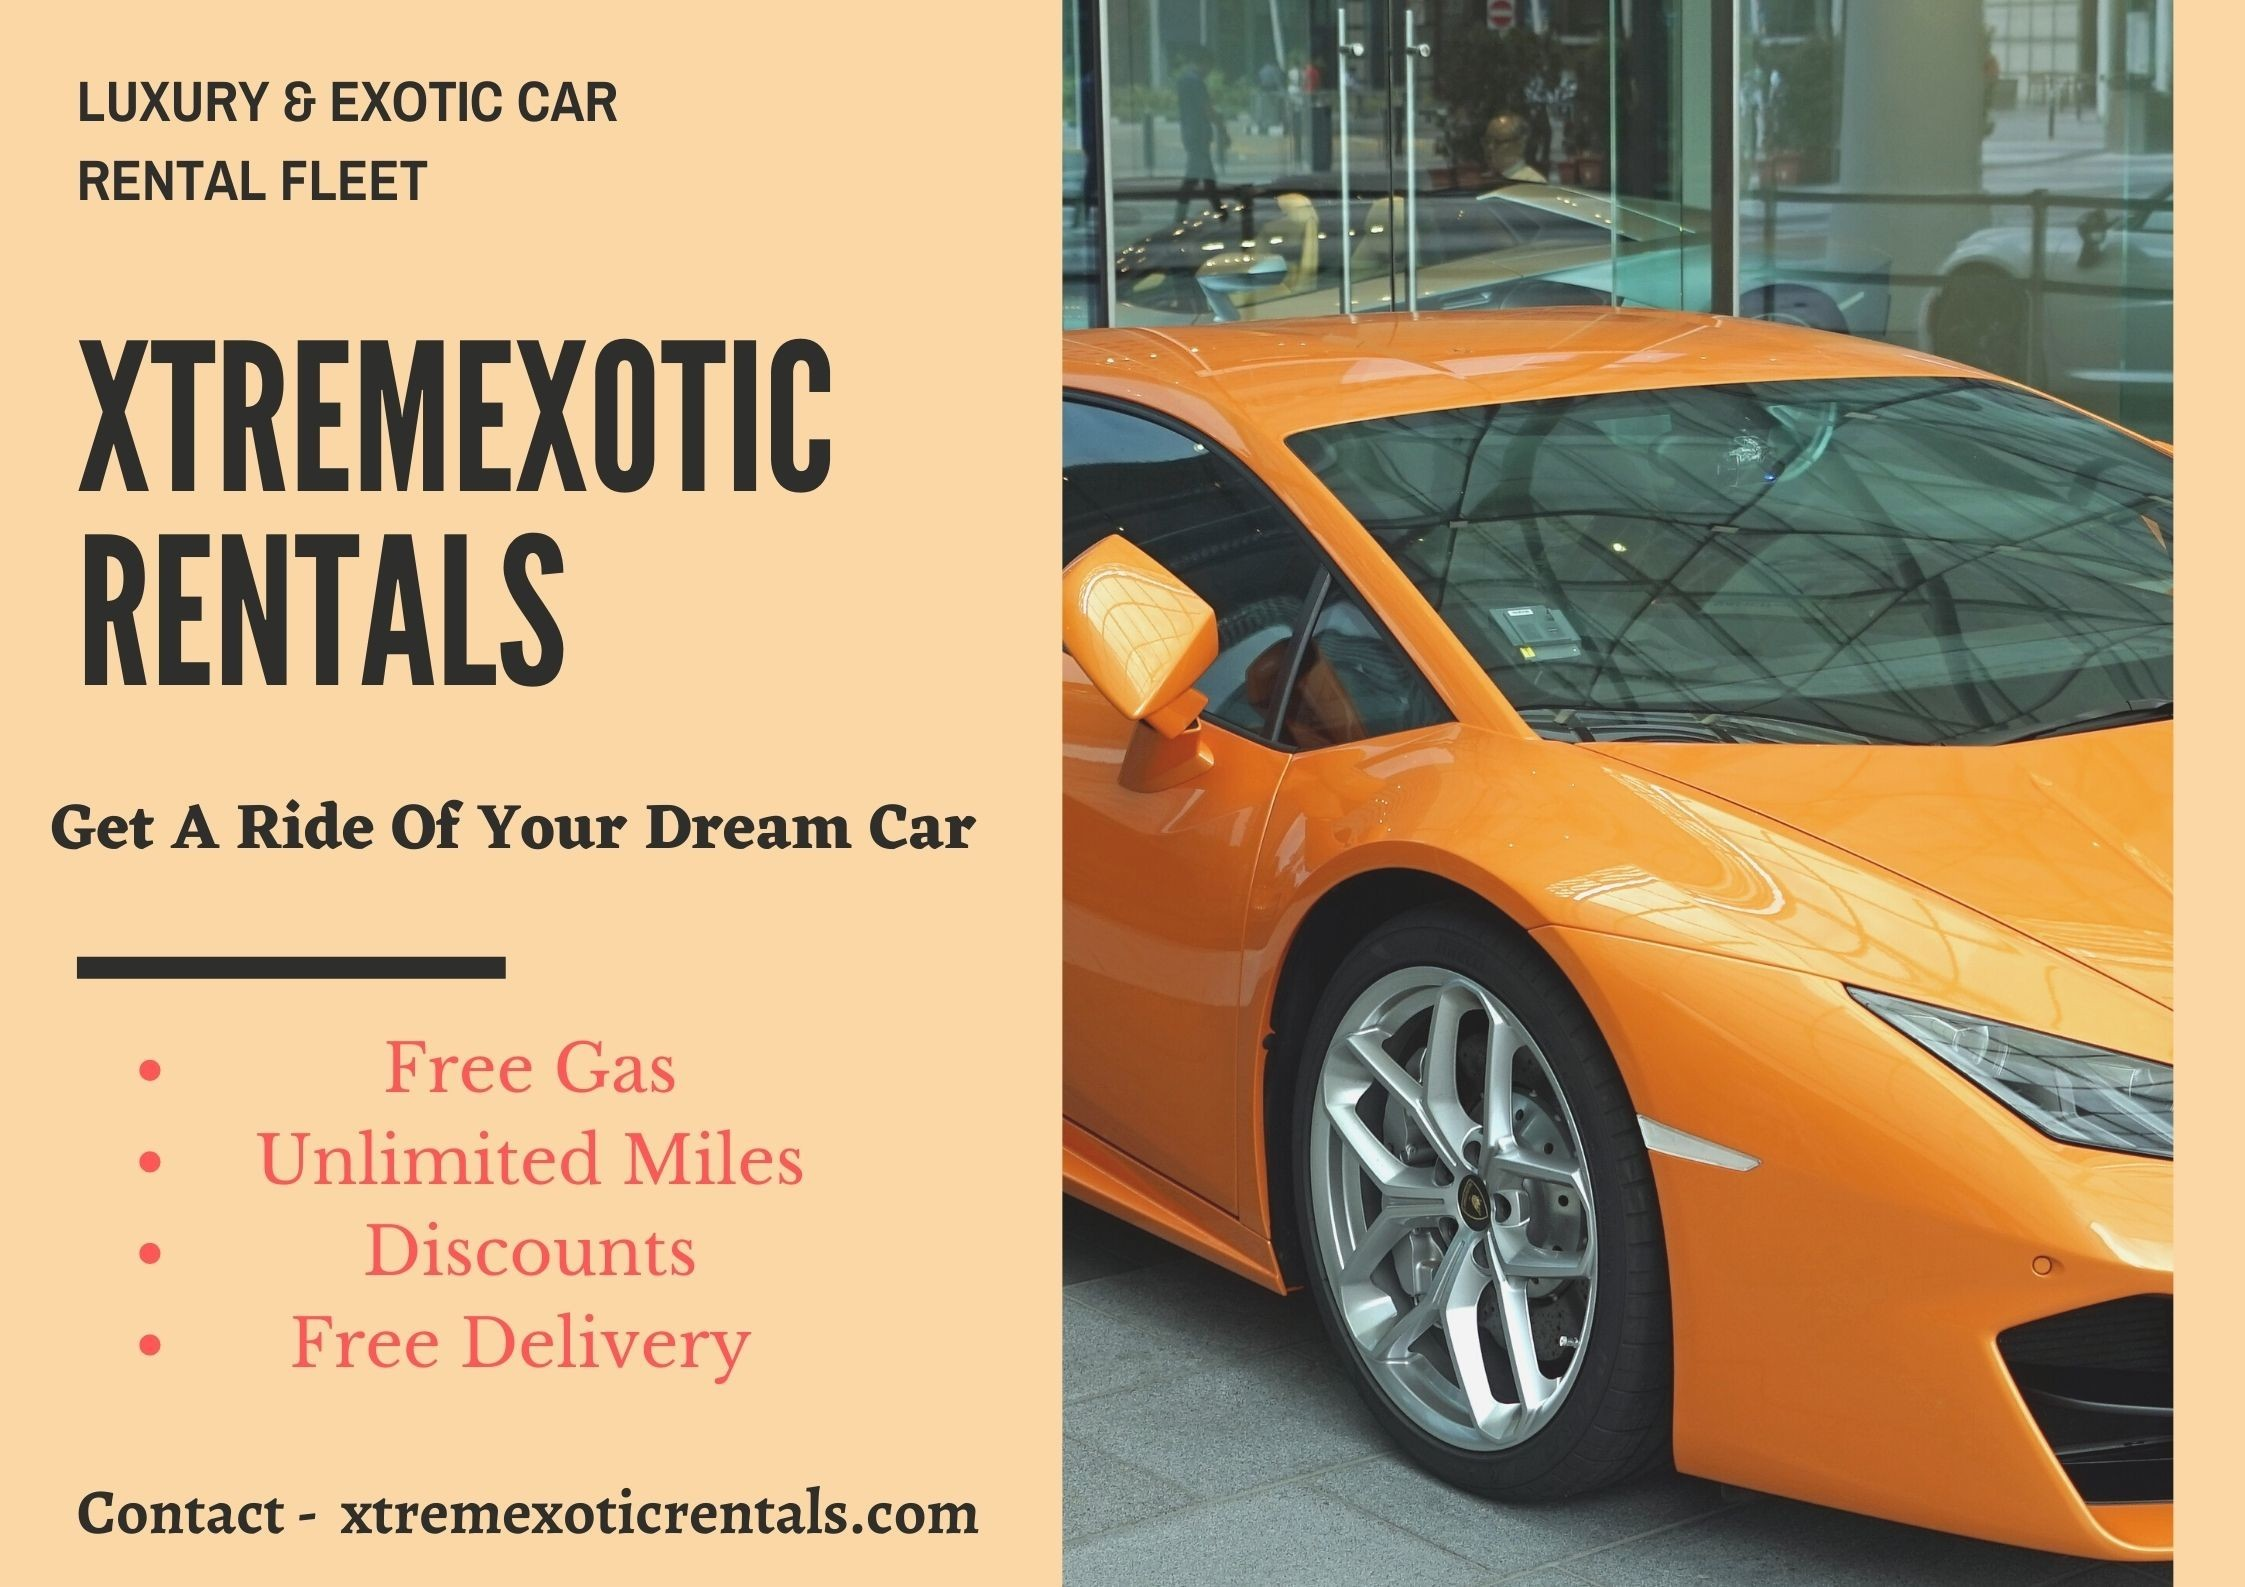 Exotic Car Rental Services In Fort Lauderdale FL   Xtremexotic Rentals